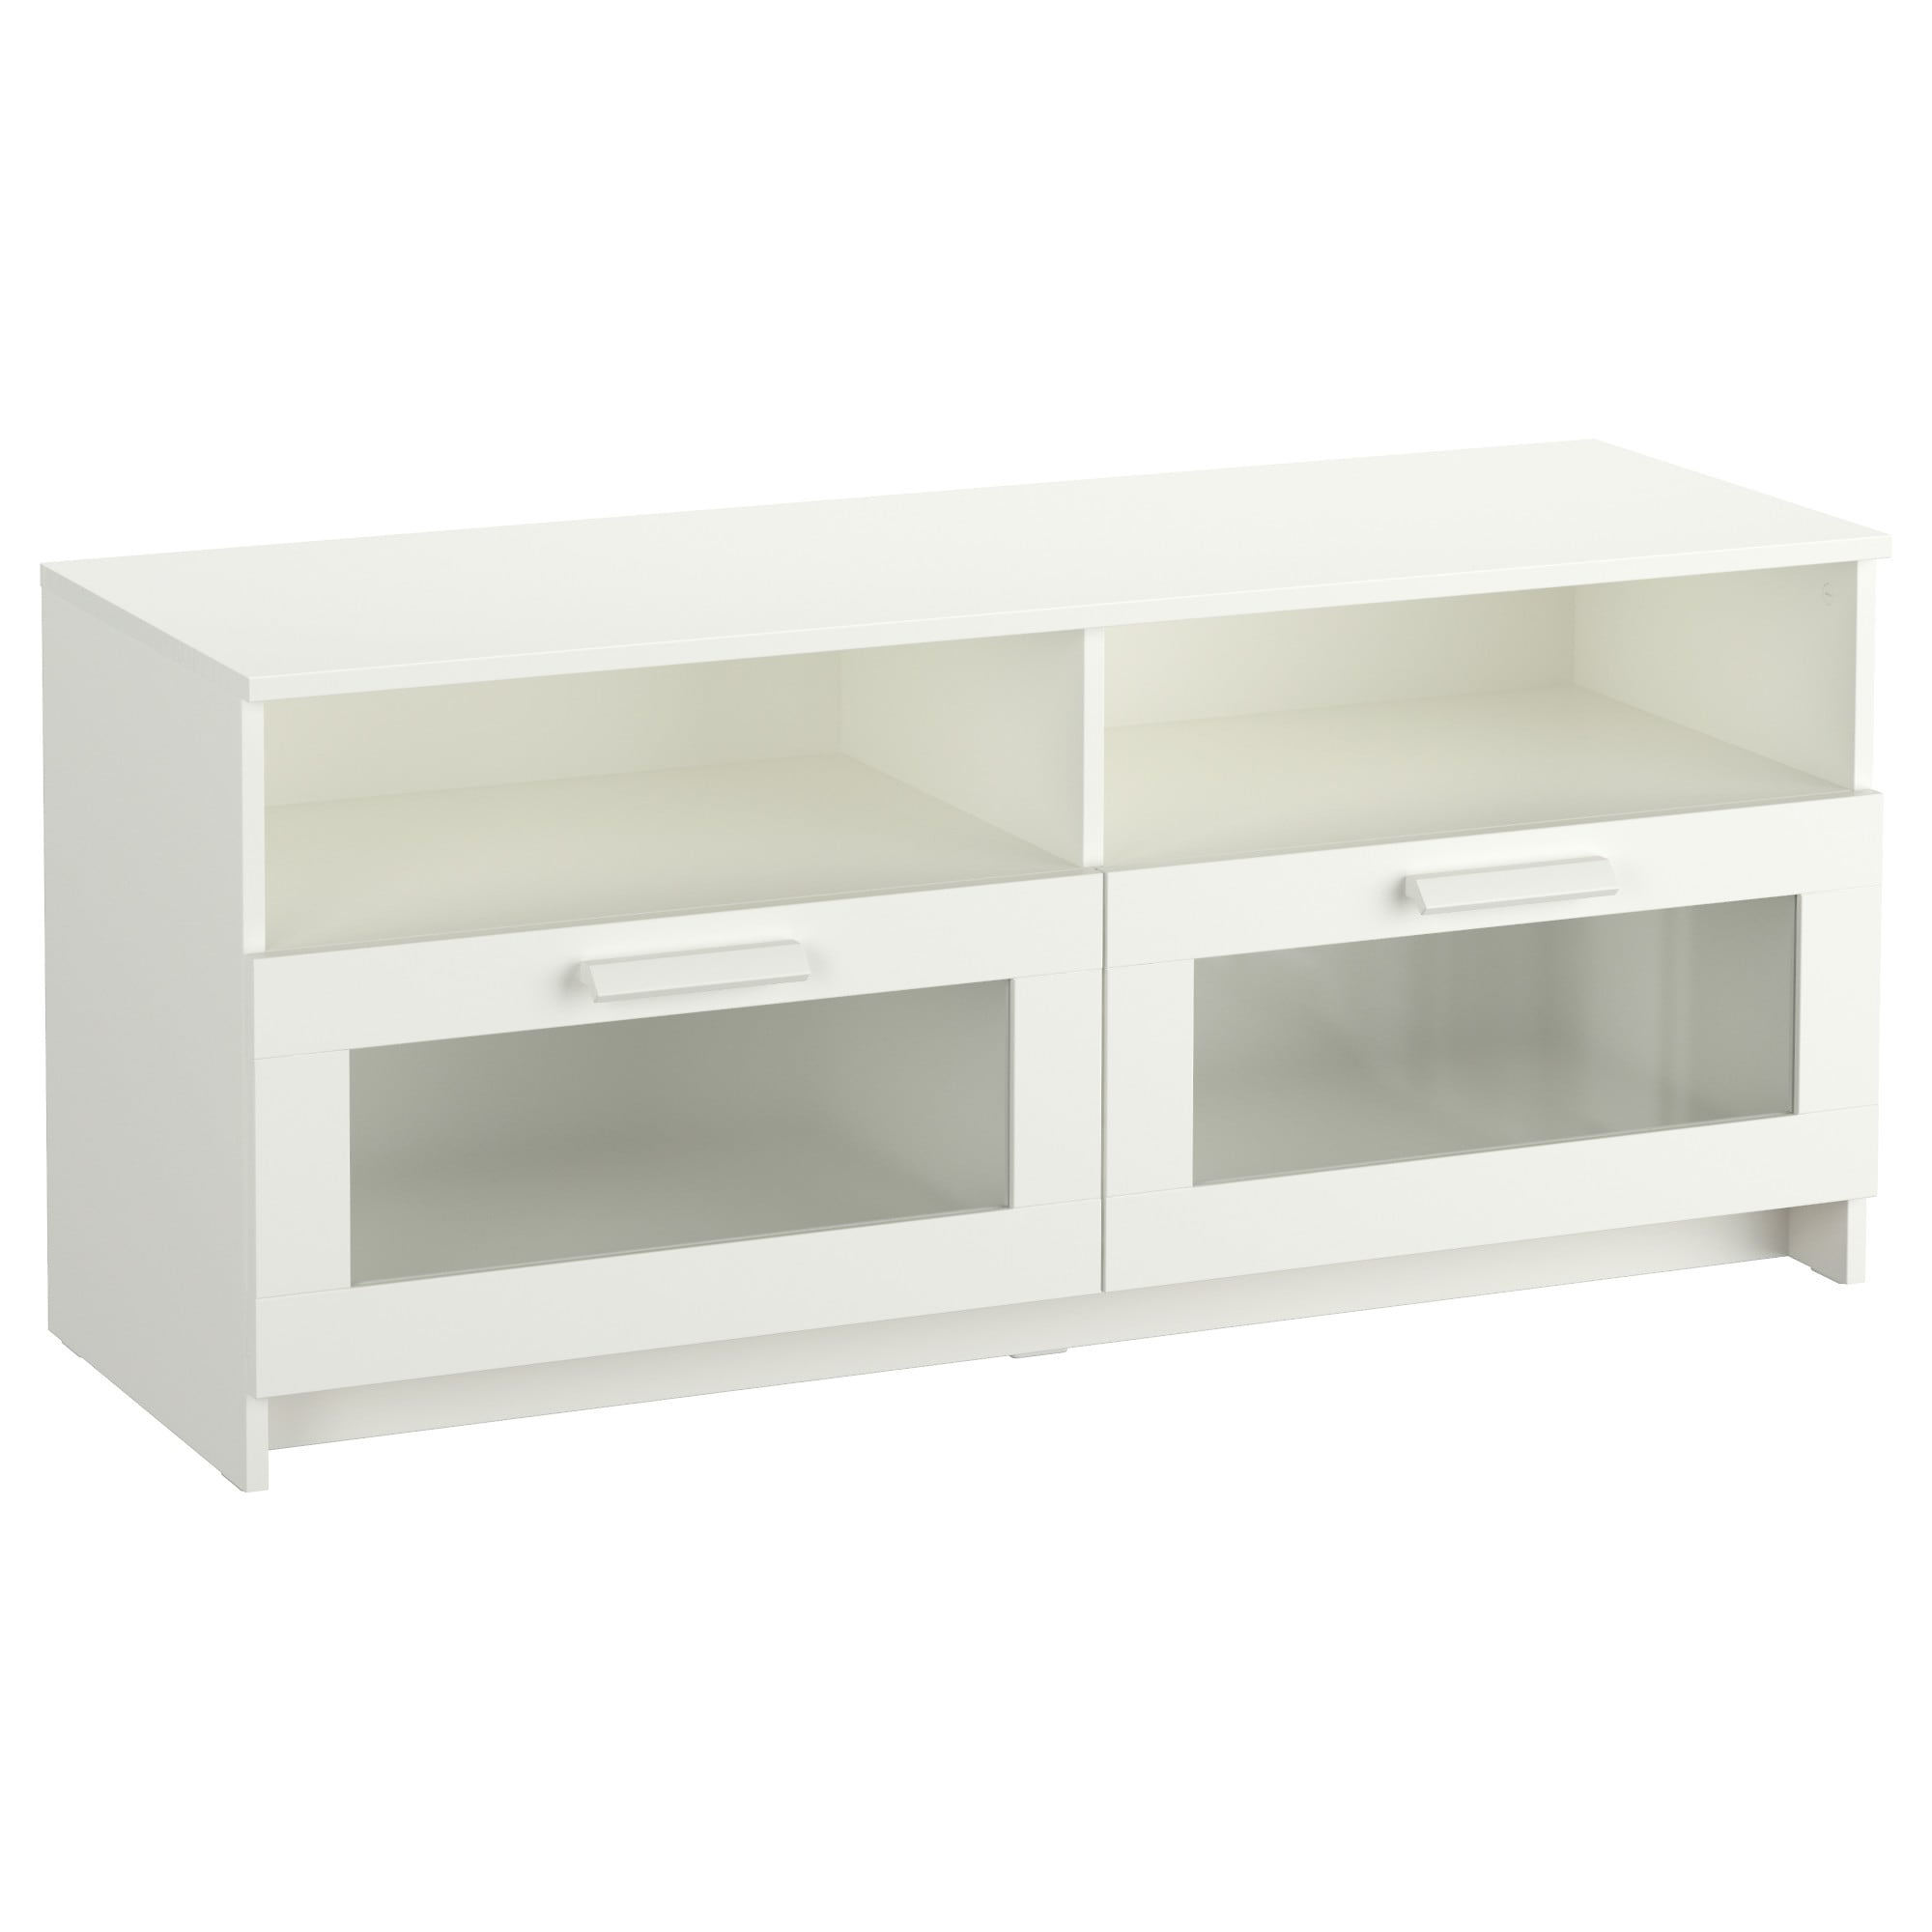 Ikea With Regard To Popular Ikea Tv Console Tables (View 10 of 20)